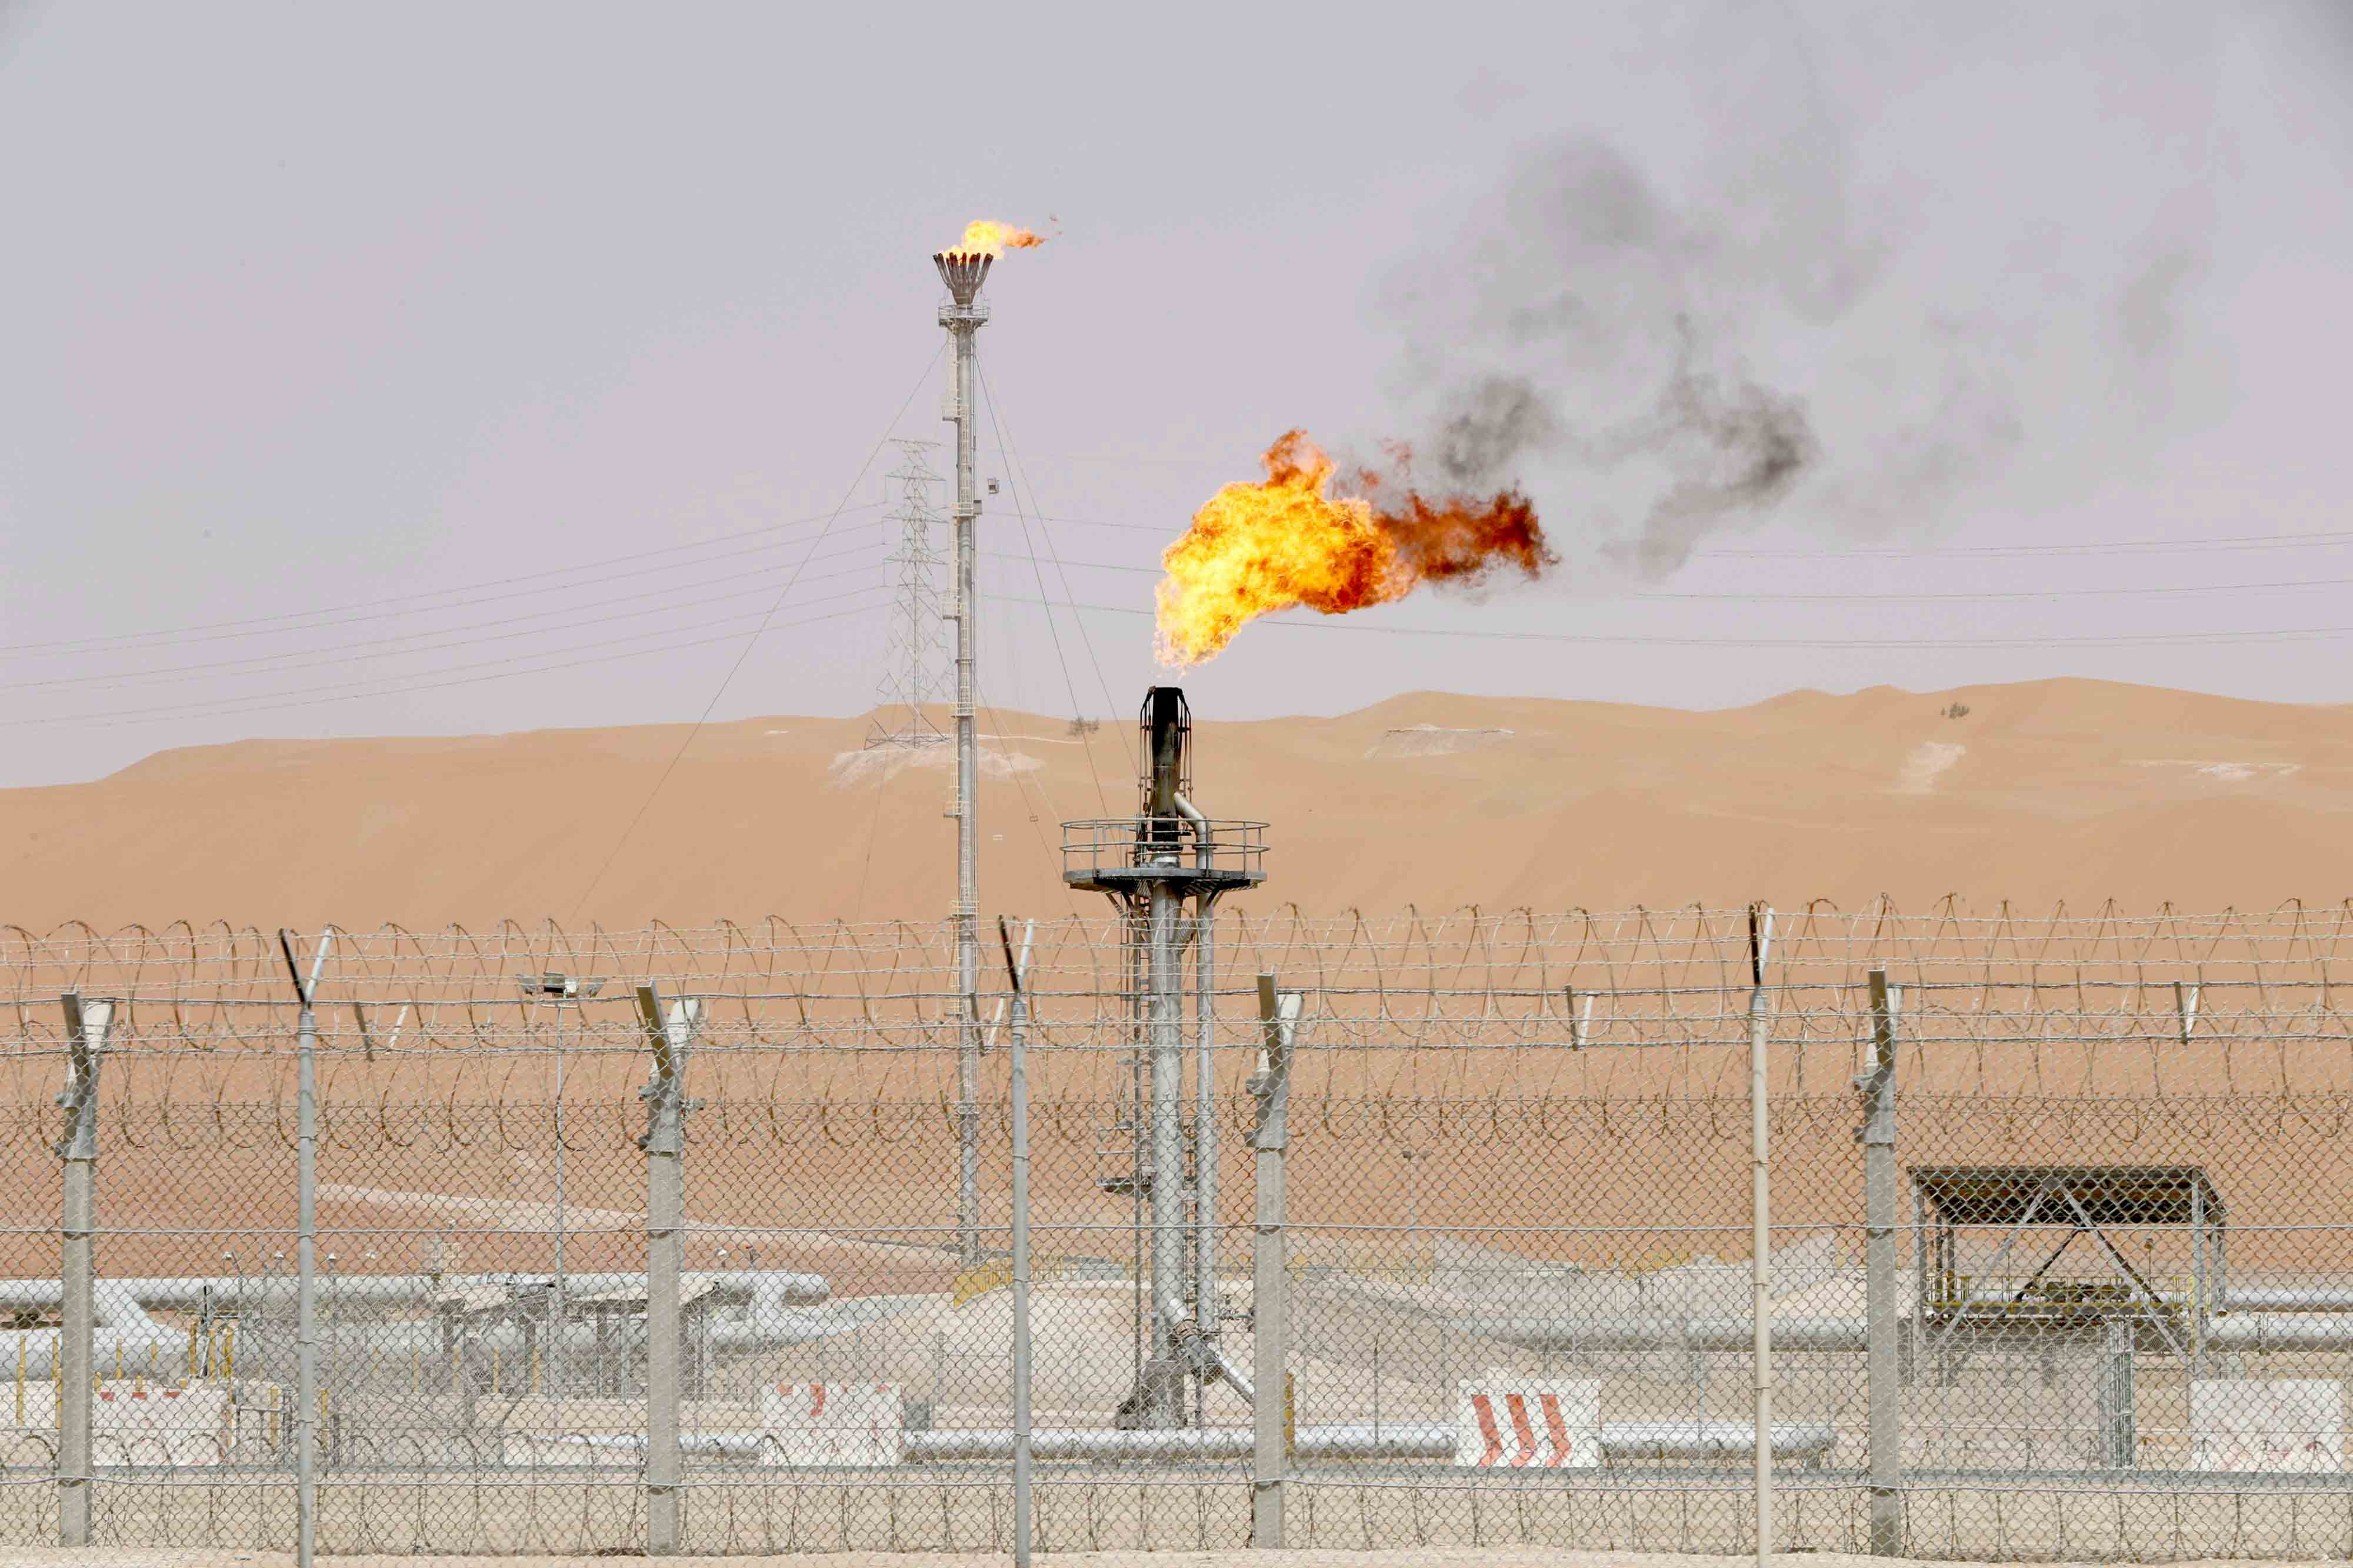 The production facility of Saudi Aramco's Shaybah oilfield in the Empty Quarter. (Reuters)